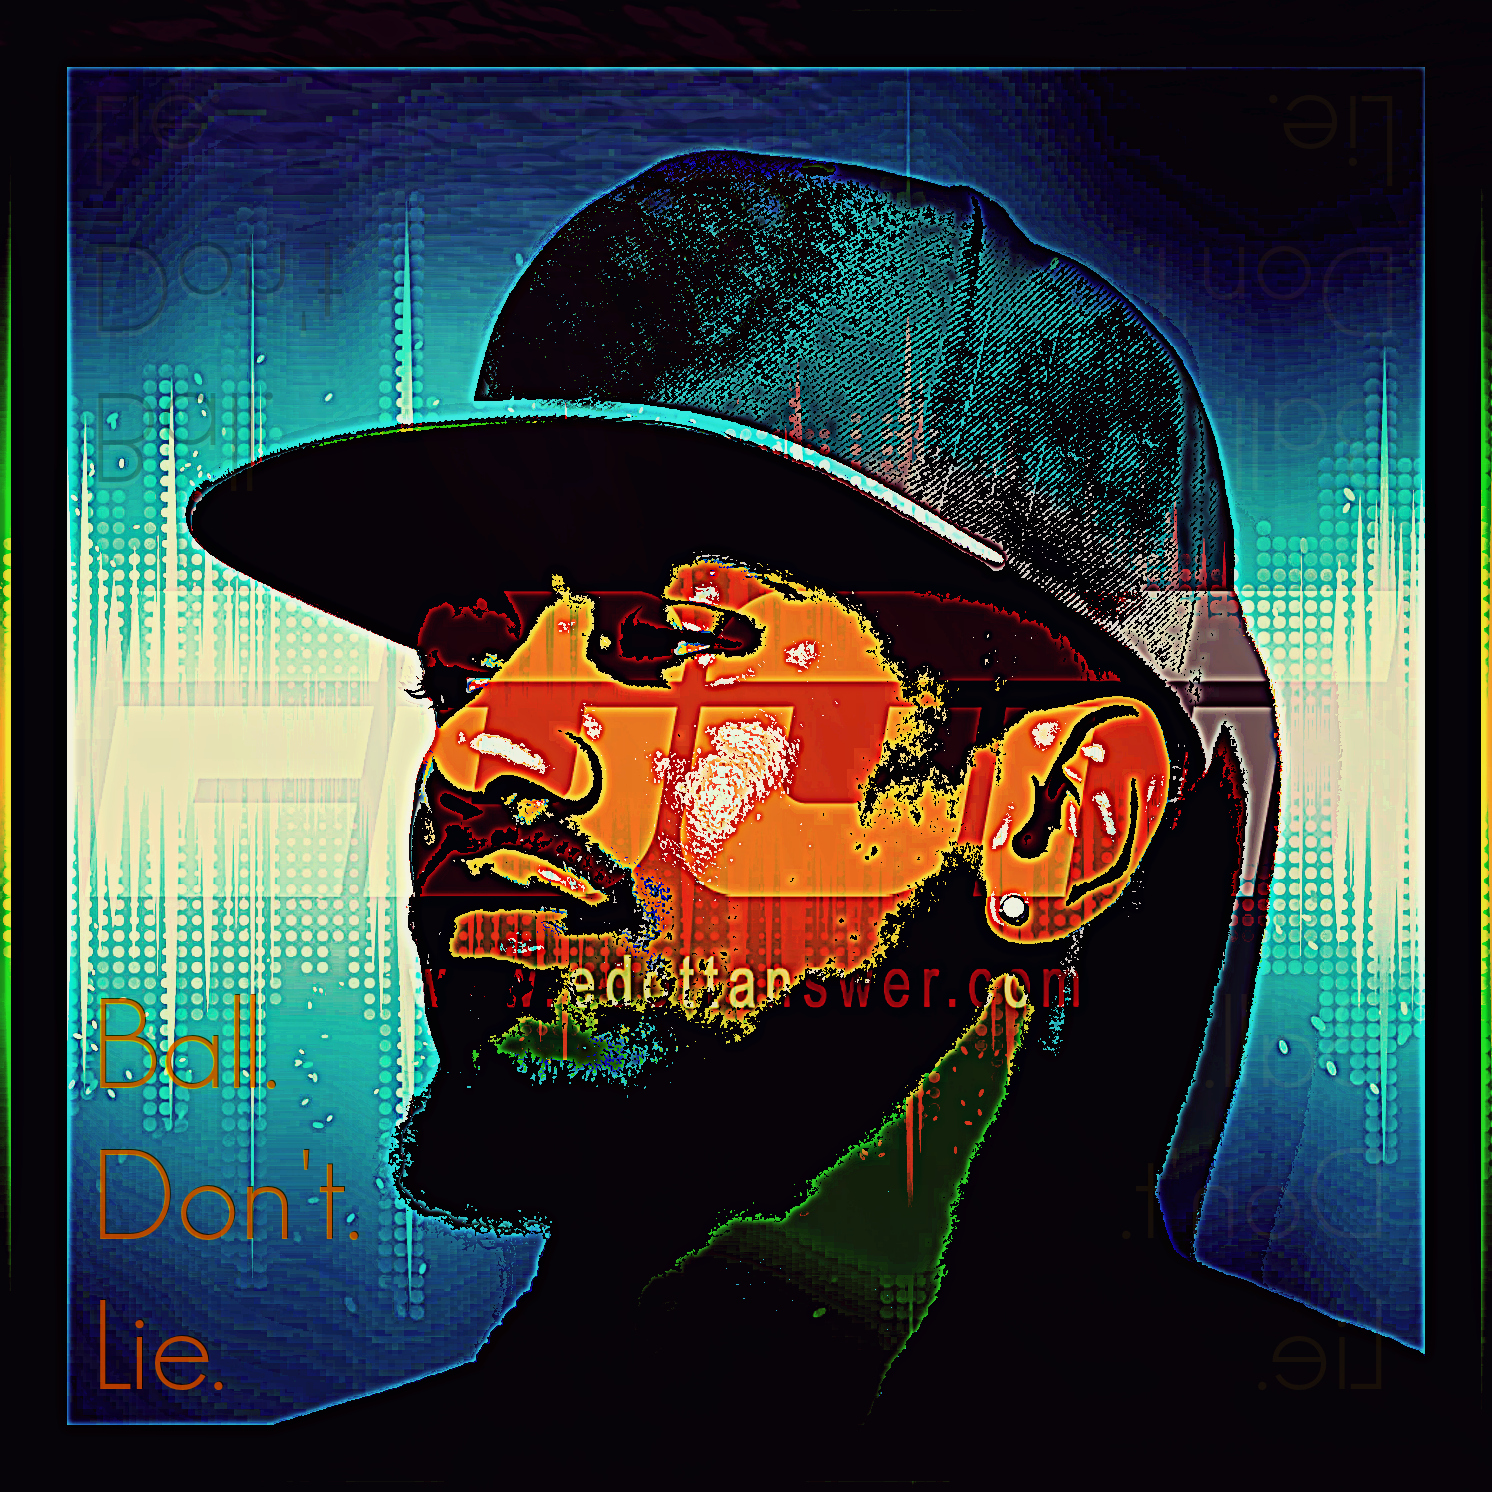 E Dott - Ball Don't Lie